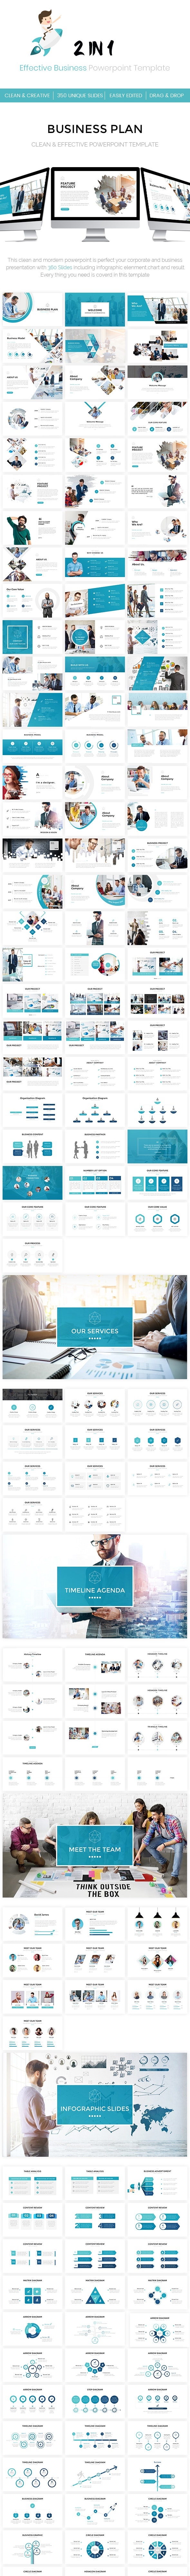 Bundle 2 in 1 Clean & Effective Business Powerpoint Template - Business PowerPoint Templates